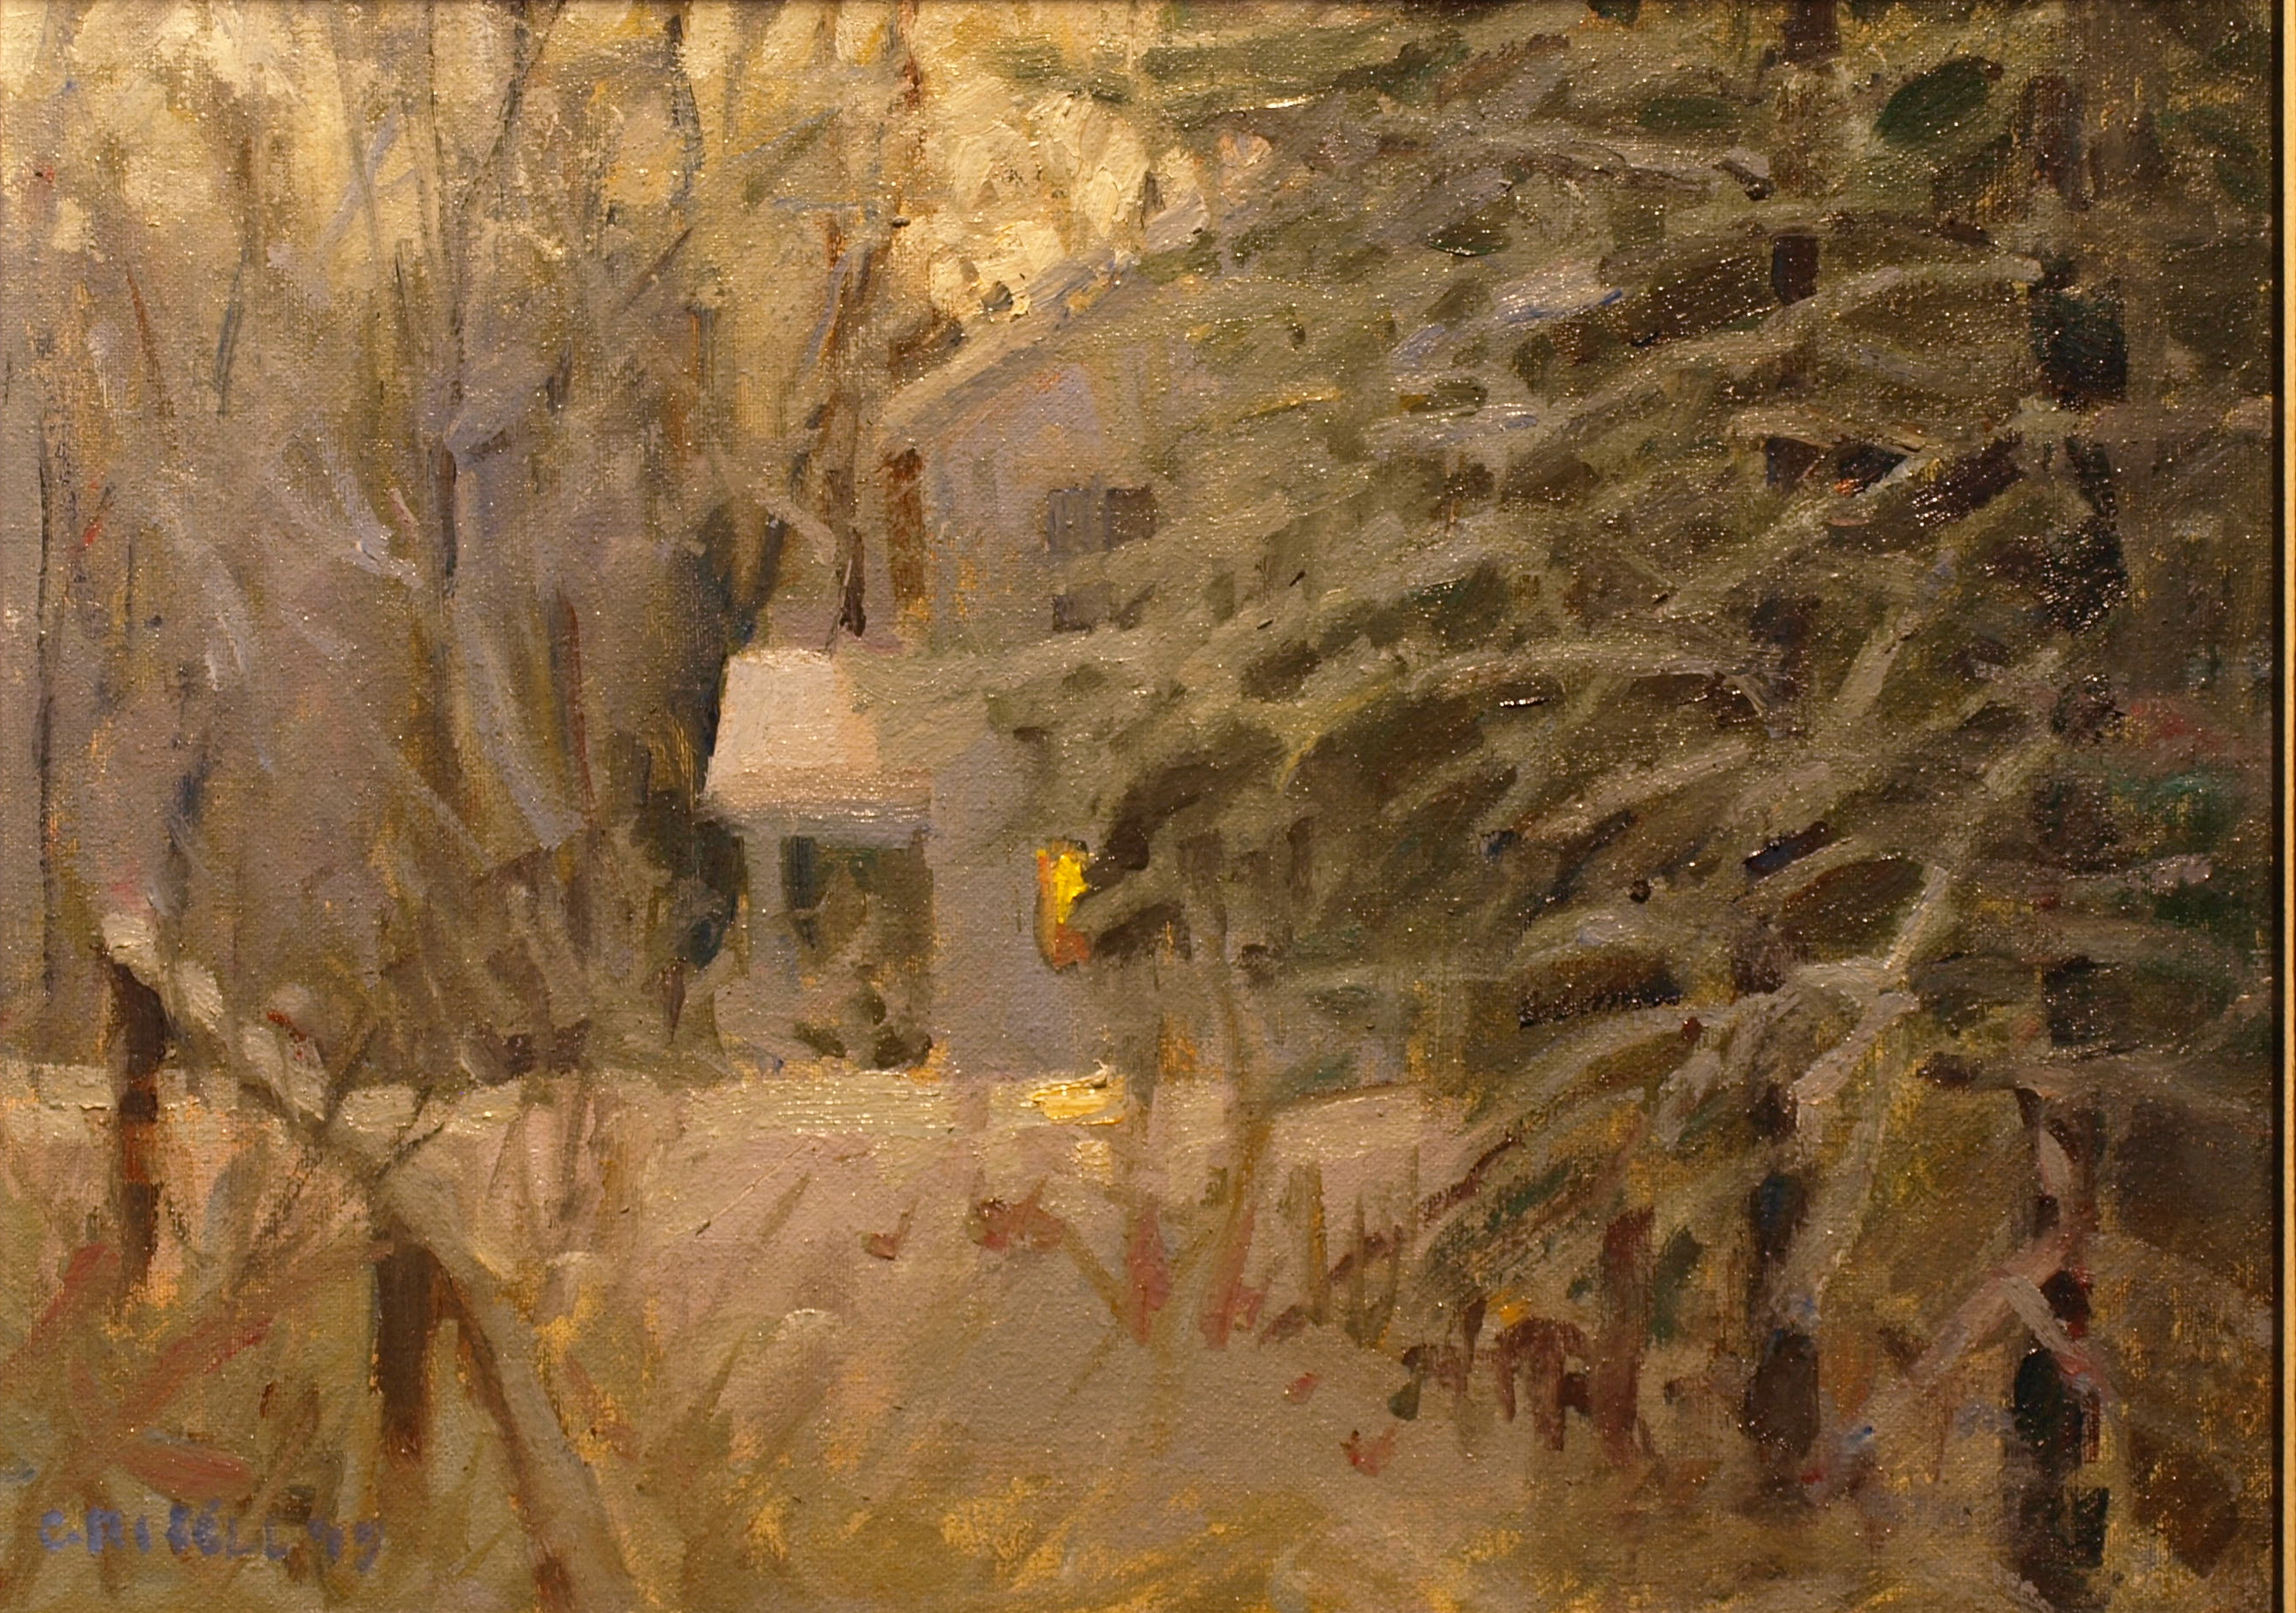 New Snow, Oil on Canvas on Panel, 12 x 16 Inches, by Susan Grisell, $300